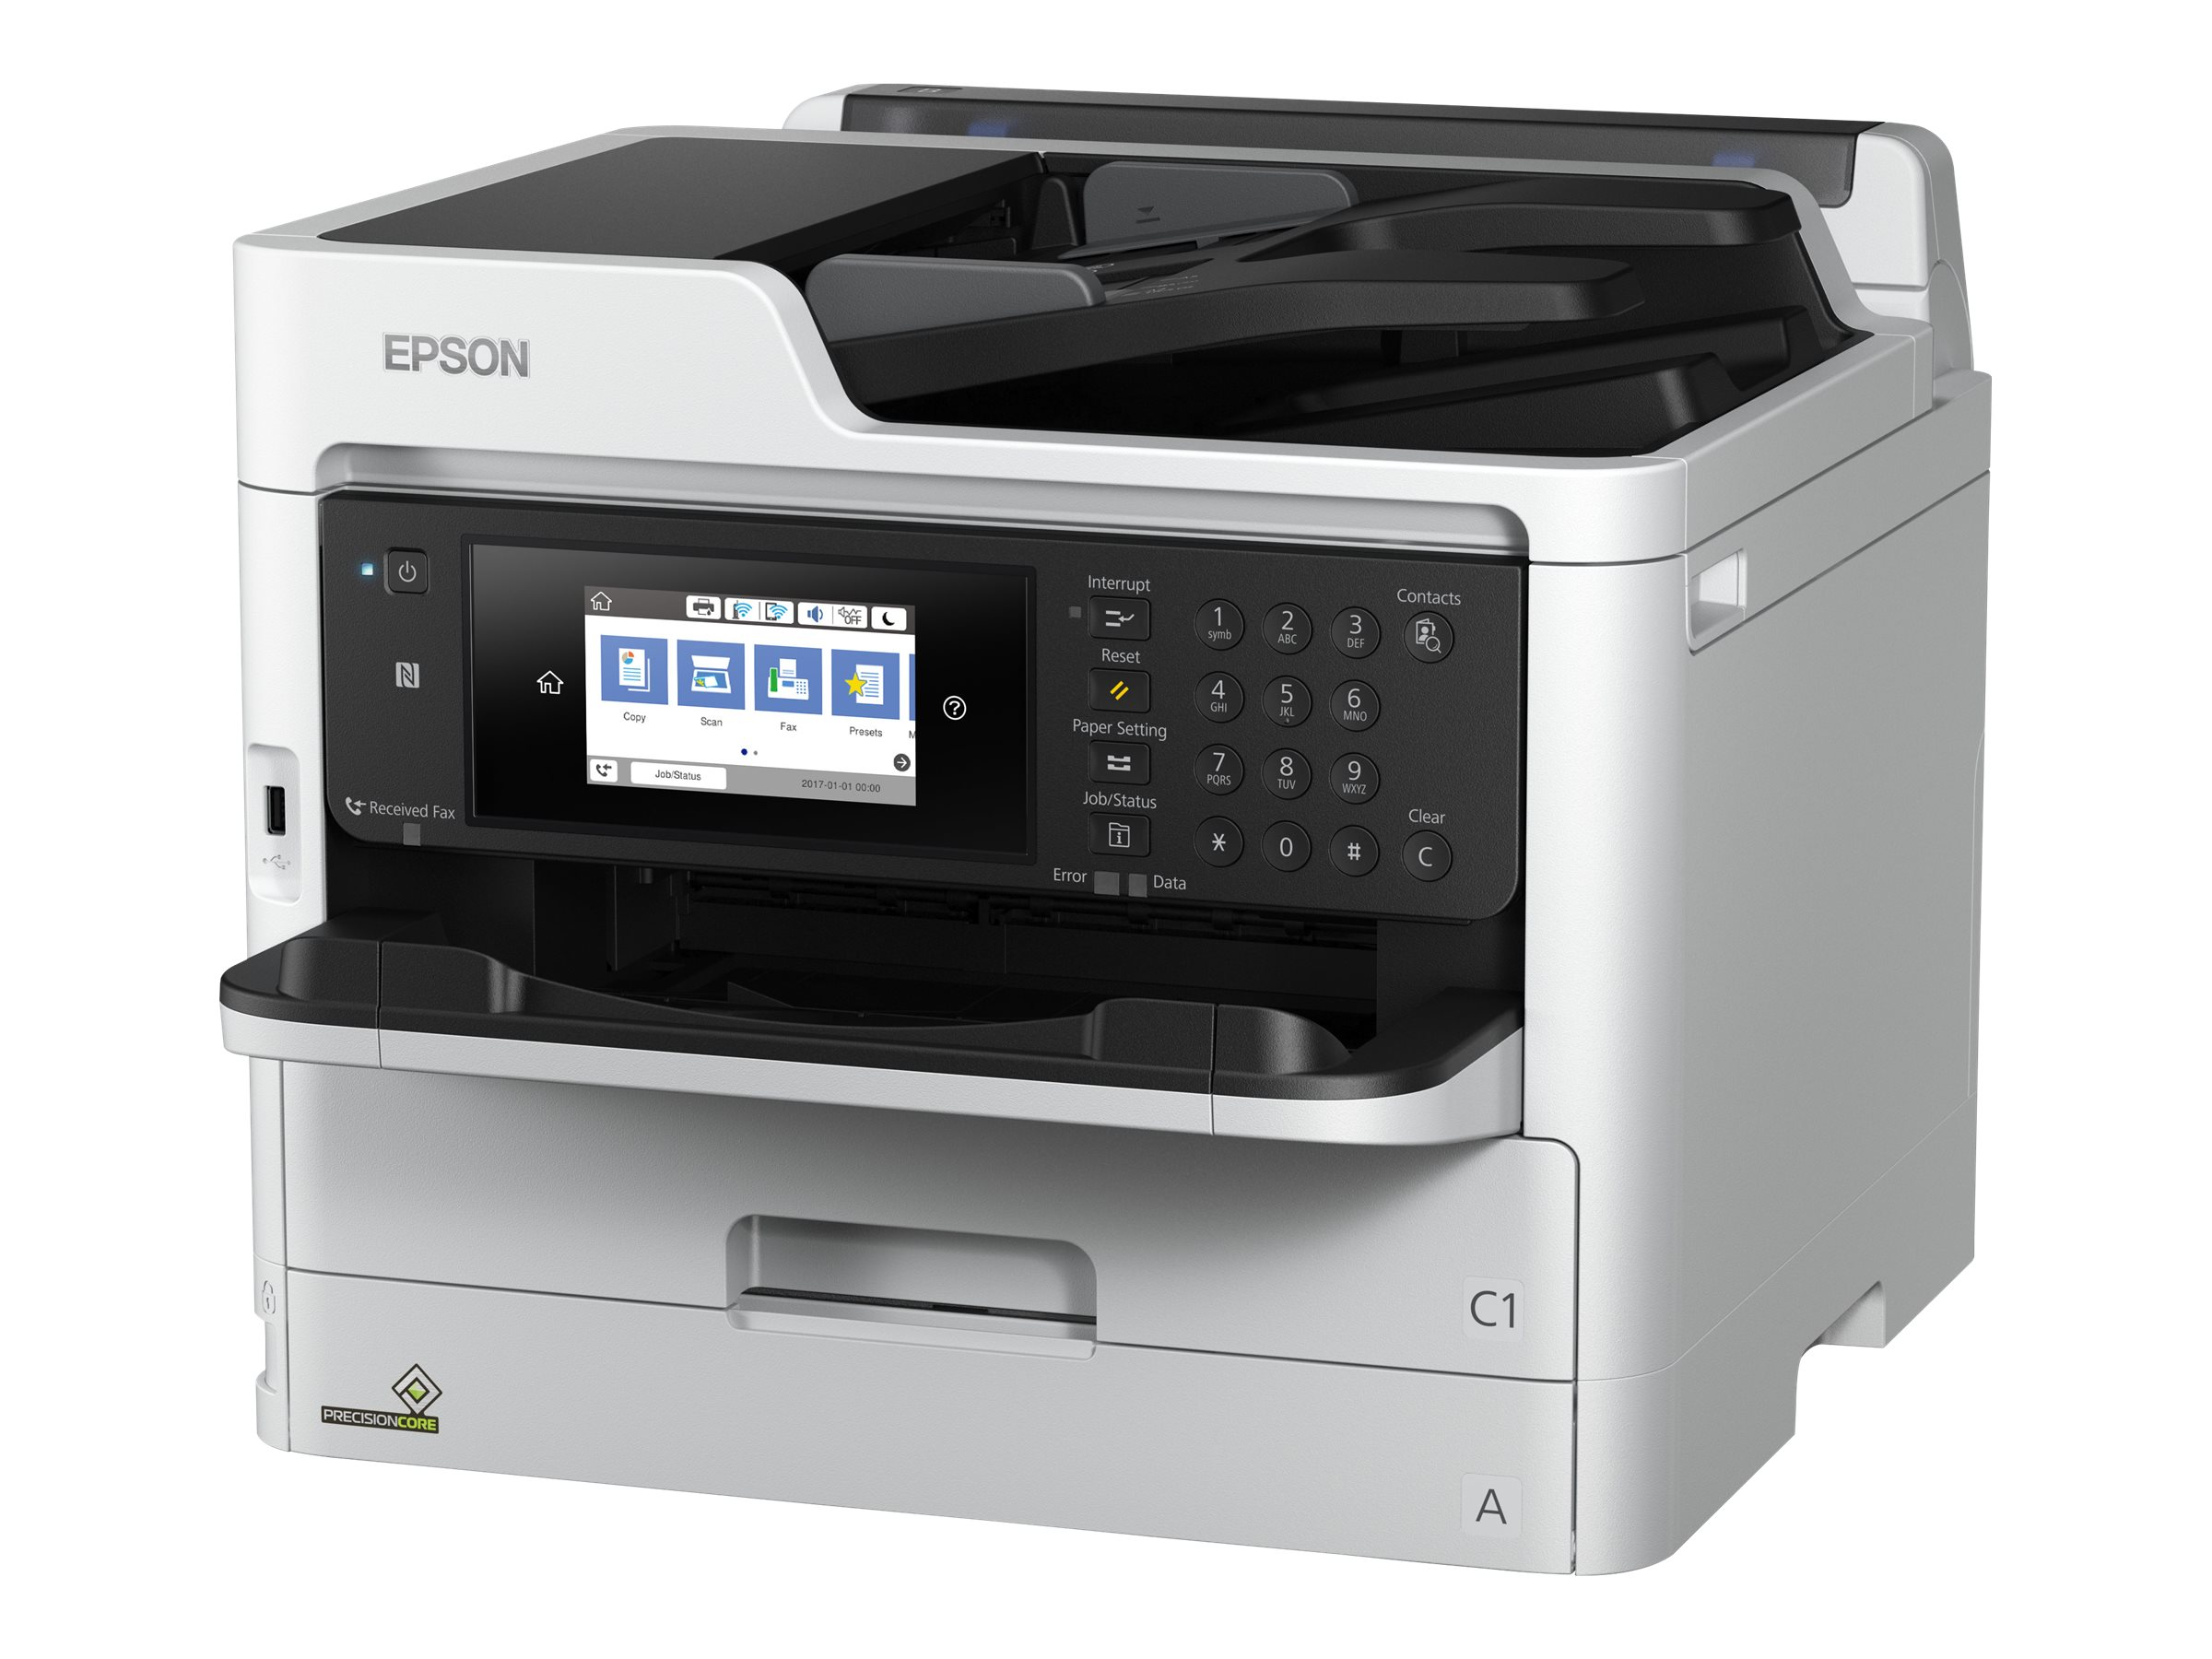 Epson WorkForce Pro WF-C5790DWF, Tinte, MFP, A4